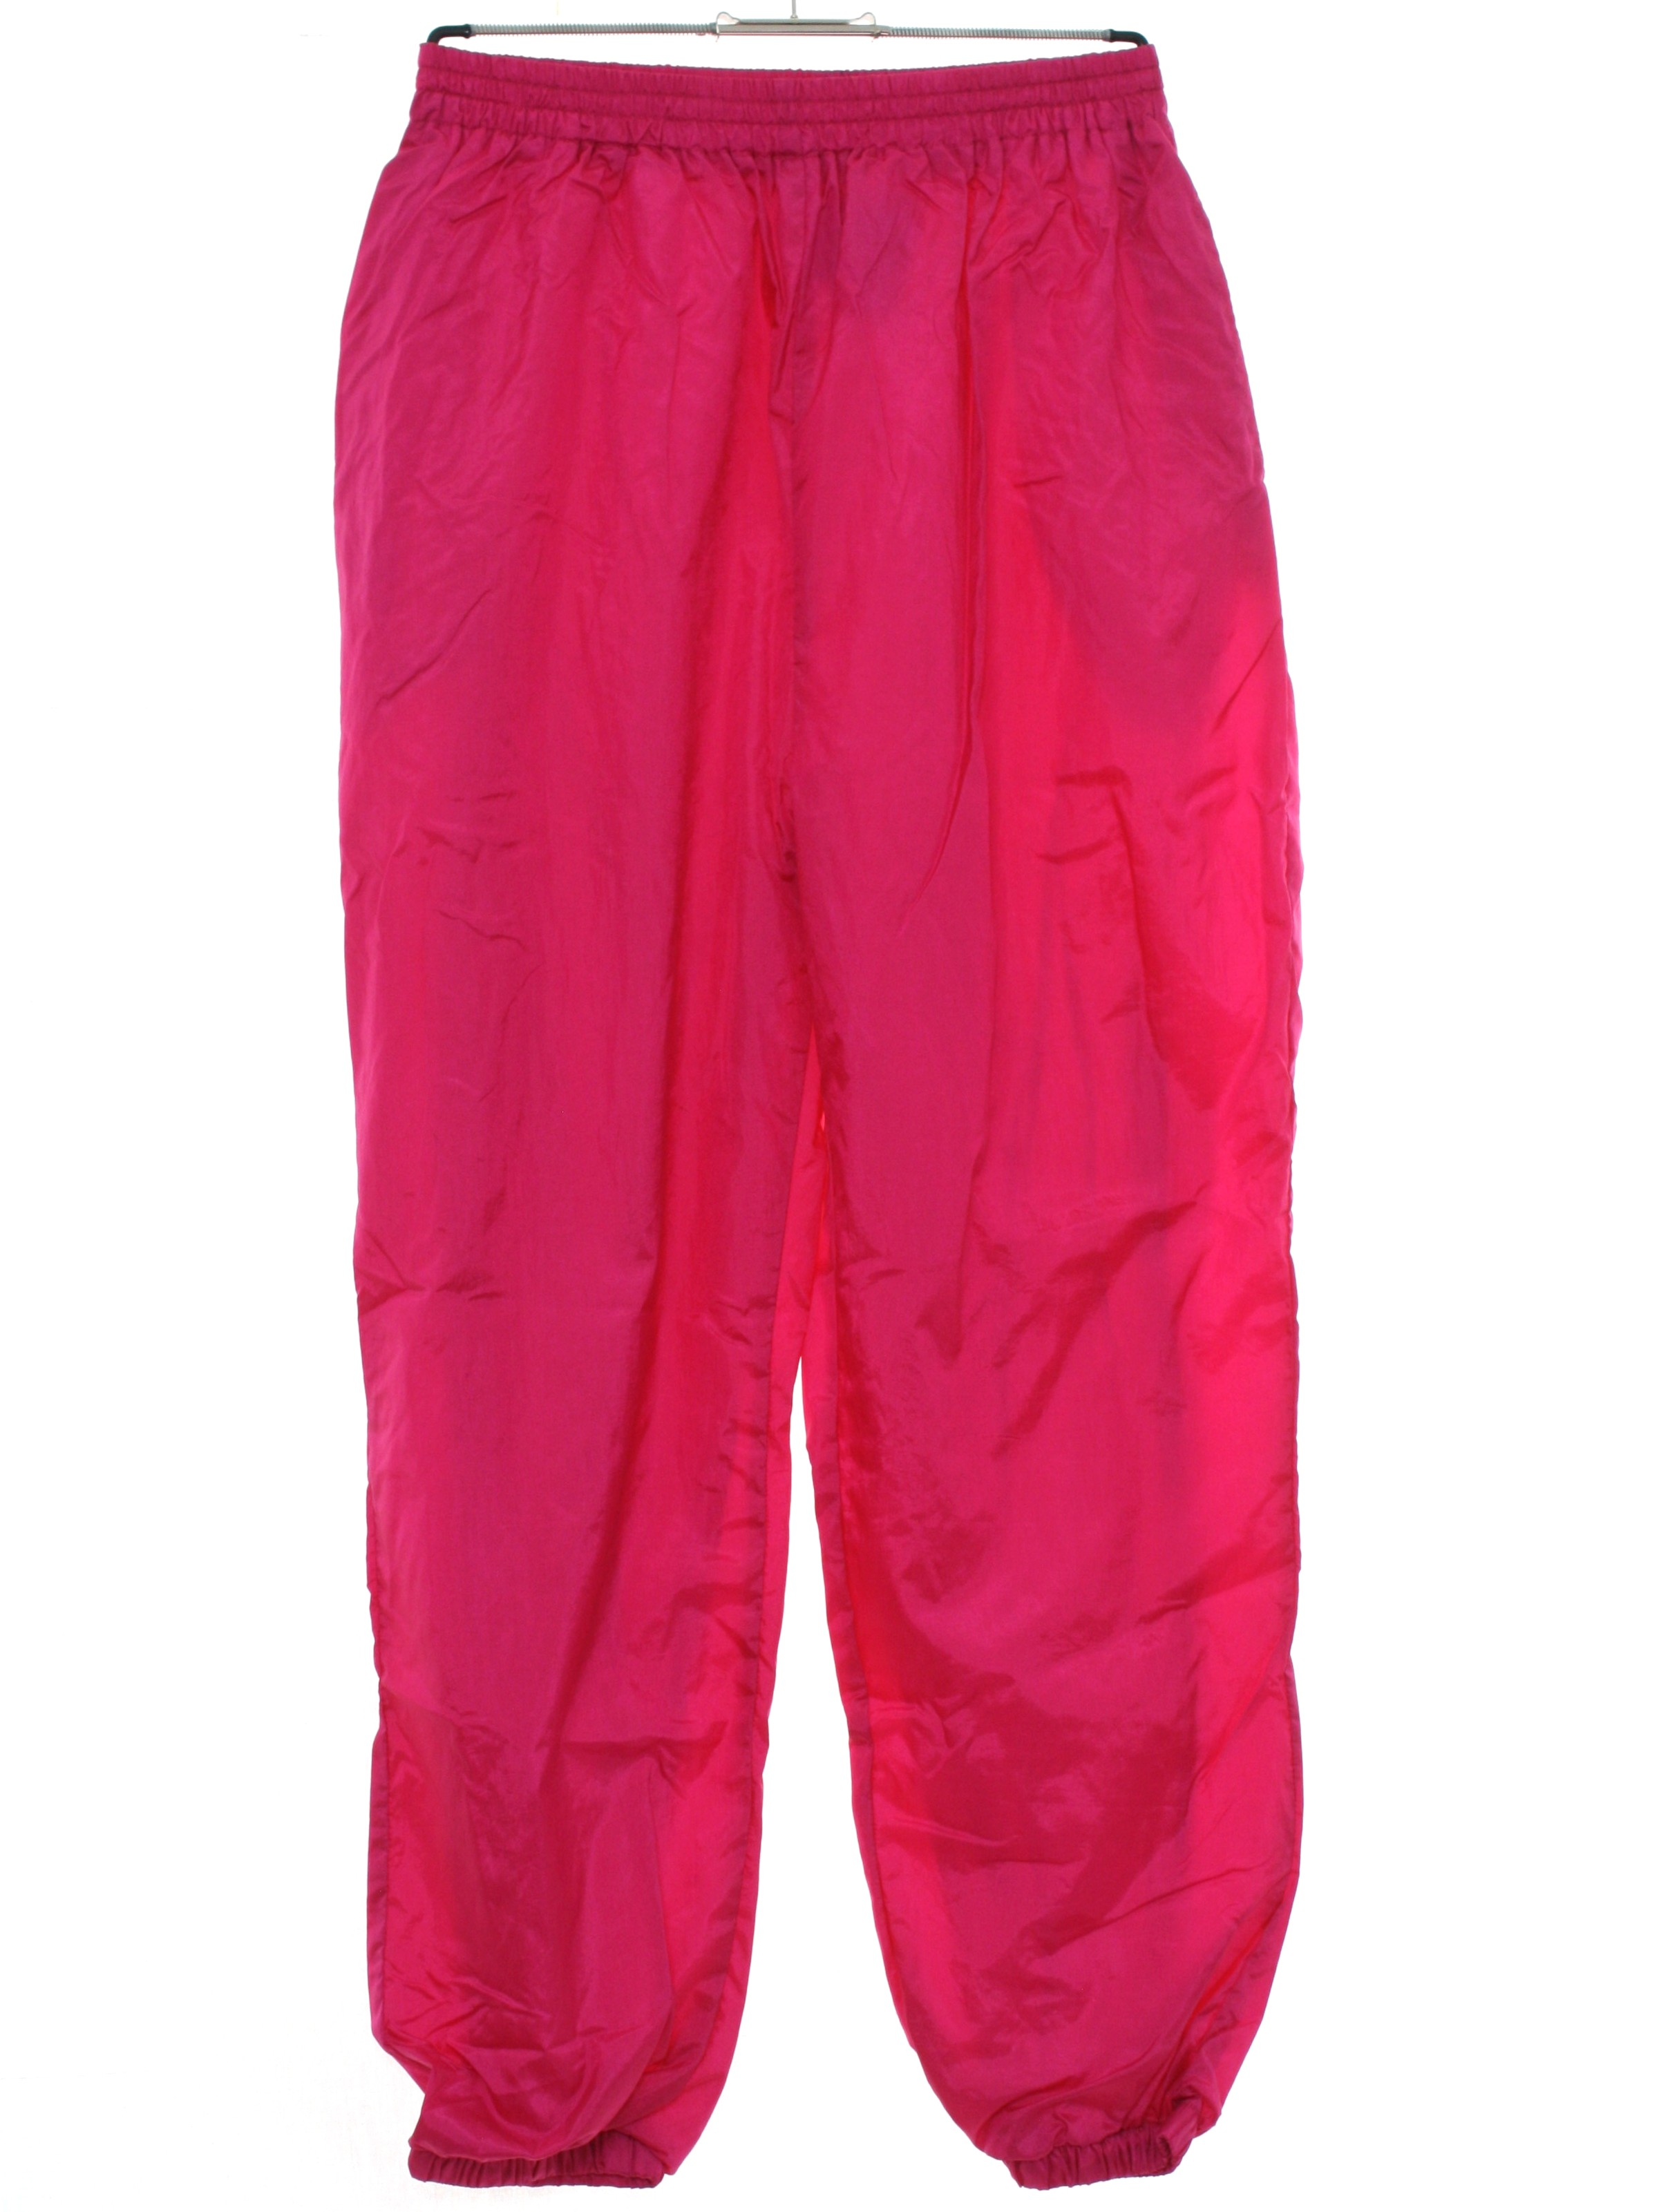 b5f69e78 1980's Crossroads Womens Totally 80s Baggy Track Pants $24.00 In stock.  Item No. 313647